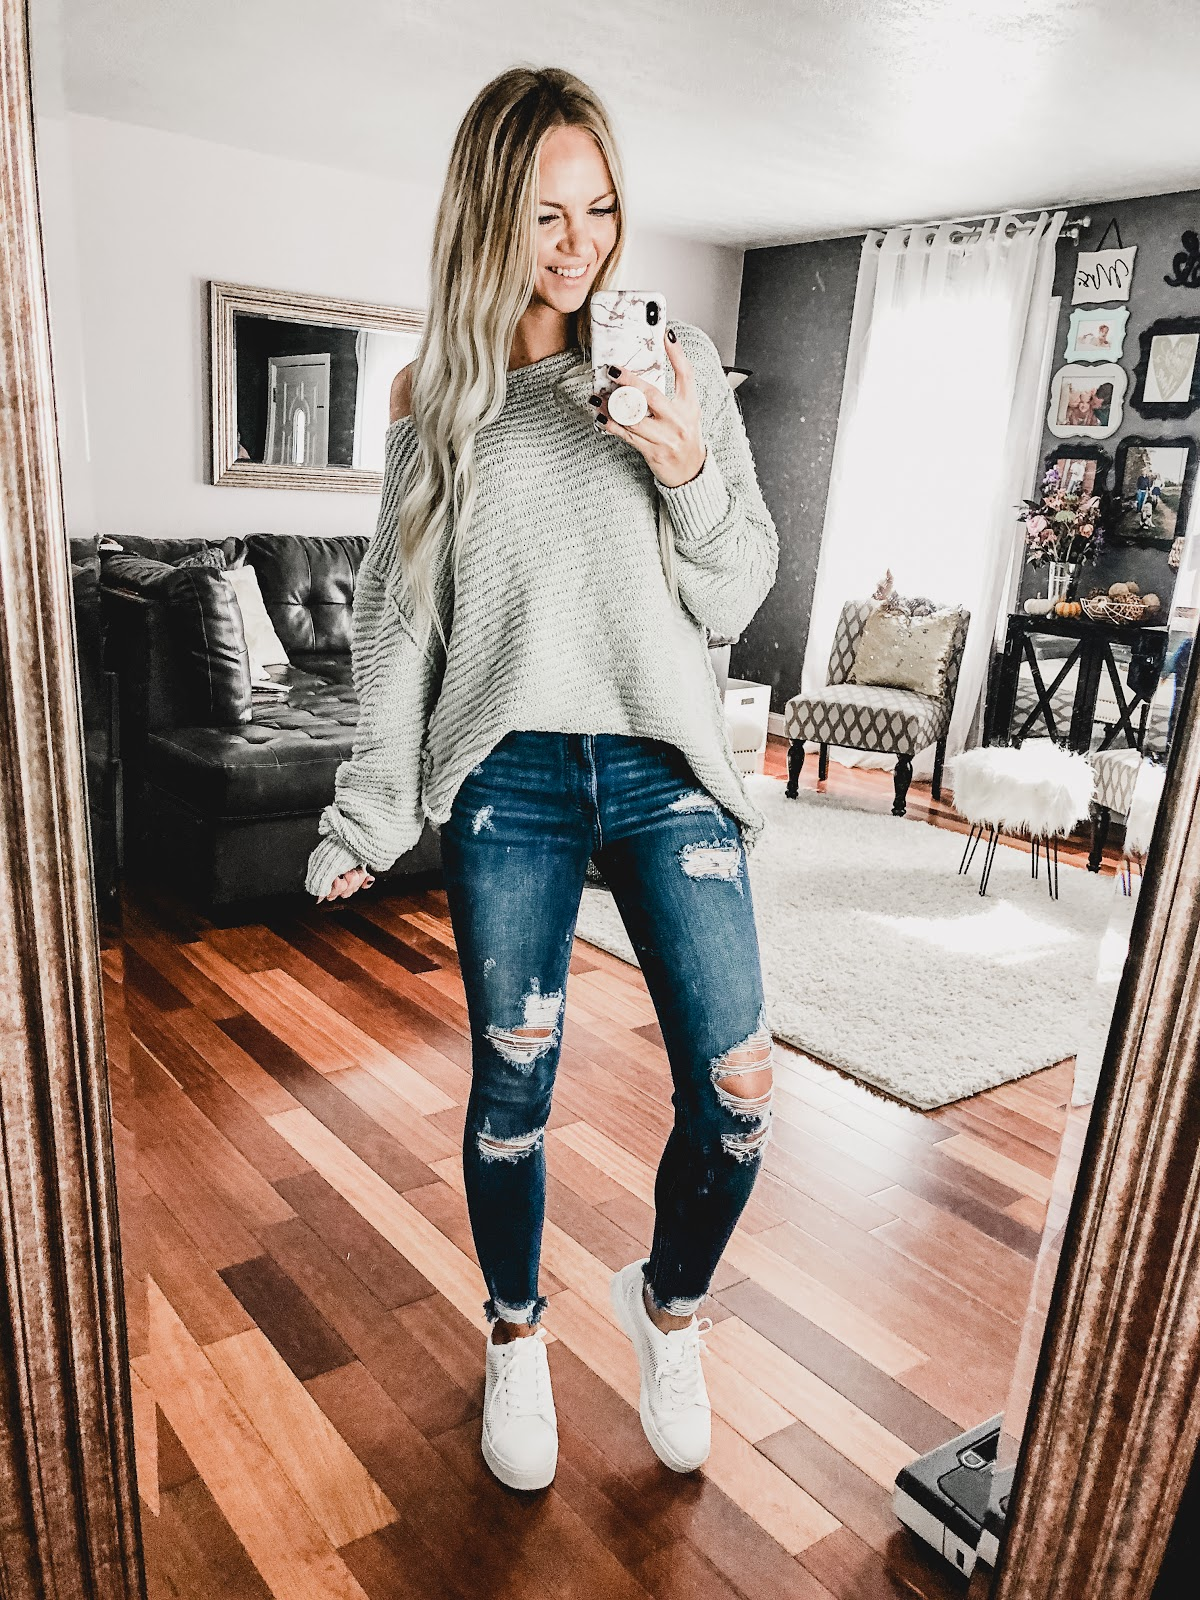 Try-on Haul with Try.com! fall fashion style outfit outfits shopping mom mommy daughter girl girls womens shoes sneakers platform leopard cardigan sweater sweatshirt leggings outfit ideas autumn haul clothing shop